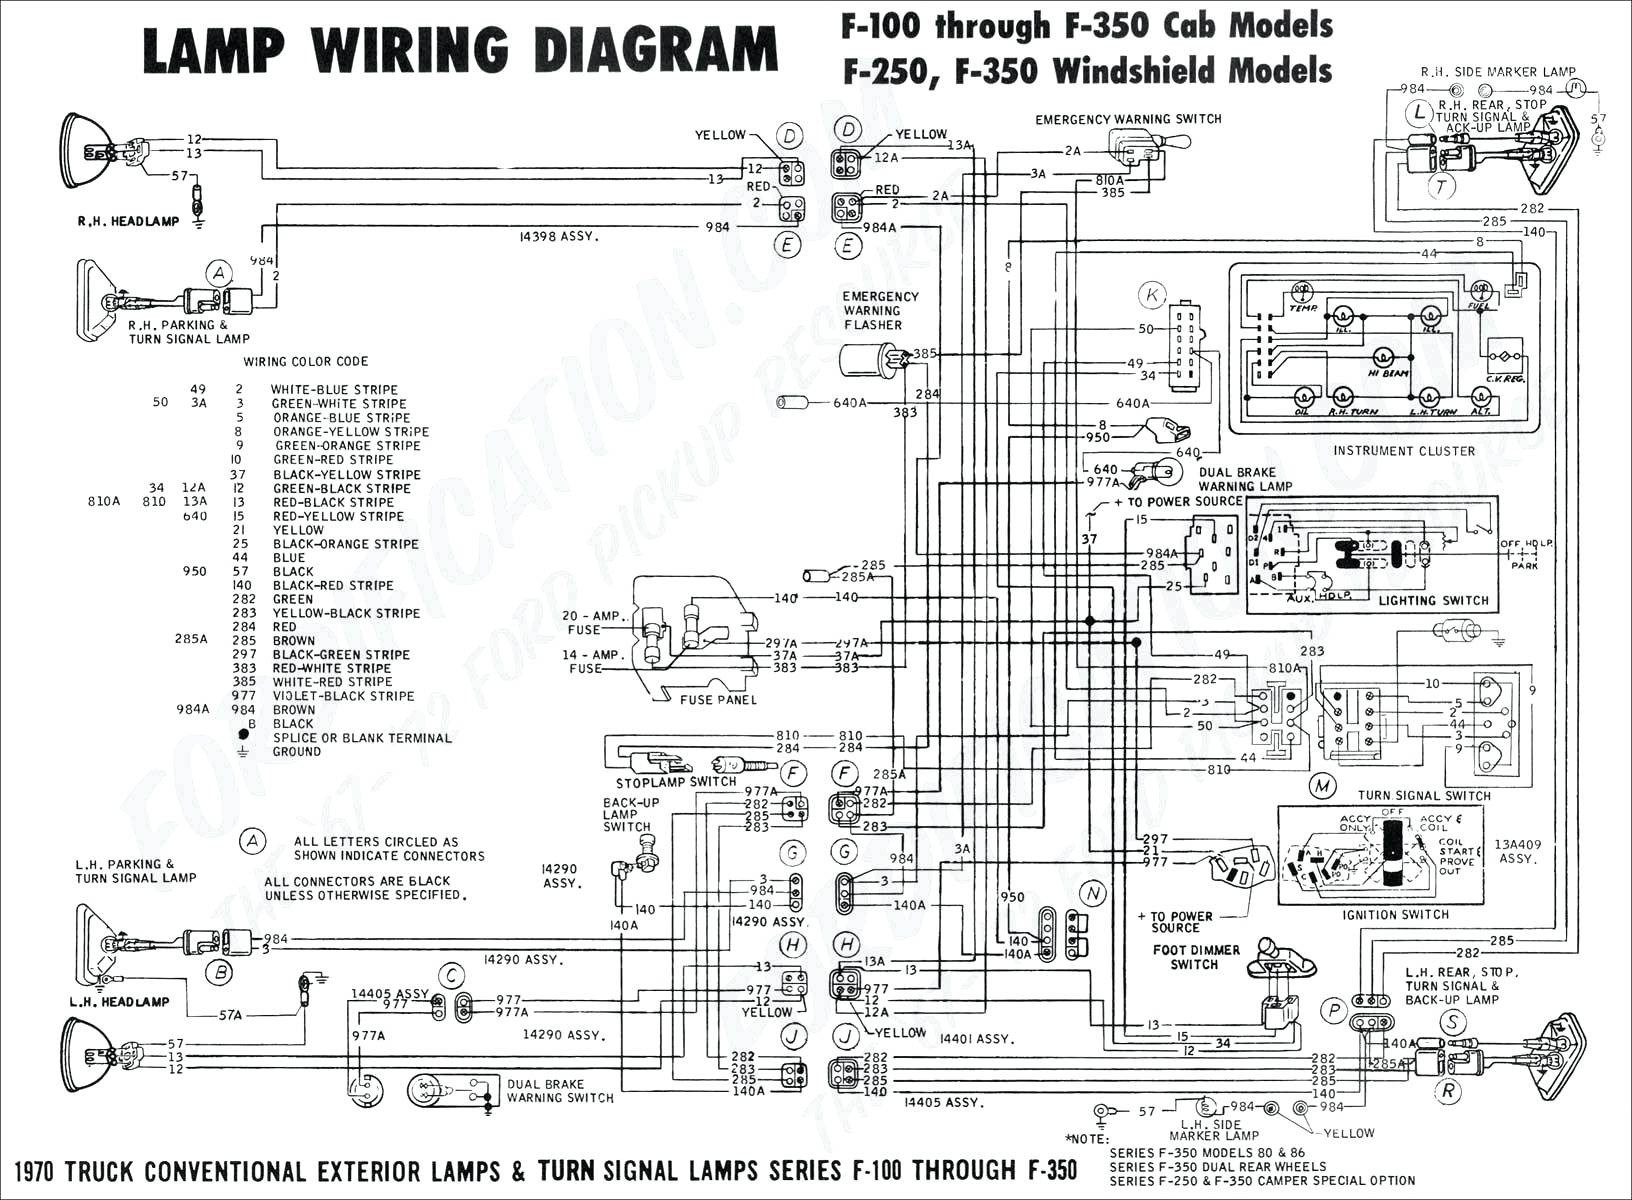 [SODI_2457]   DIAGRAM] Ford F53 Trailer Wiring Diagram FULL Version HD Quality Wiring  Diagram - K98SCHEMATIC4849.BEAUTYWELL.IT | 2013 Ford F53 Brake Position Switch Wiring Diagram |  | k98schematic4849.beautywell.it